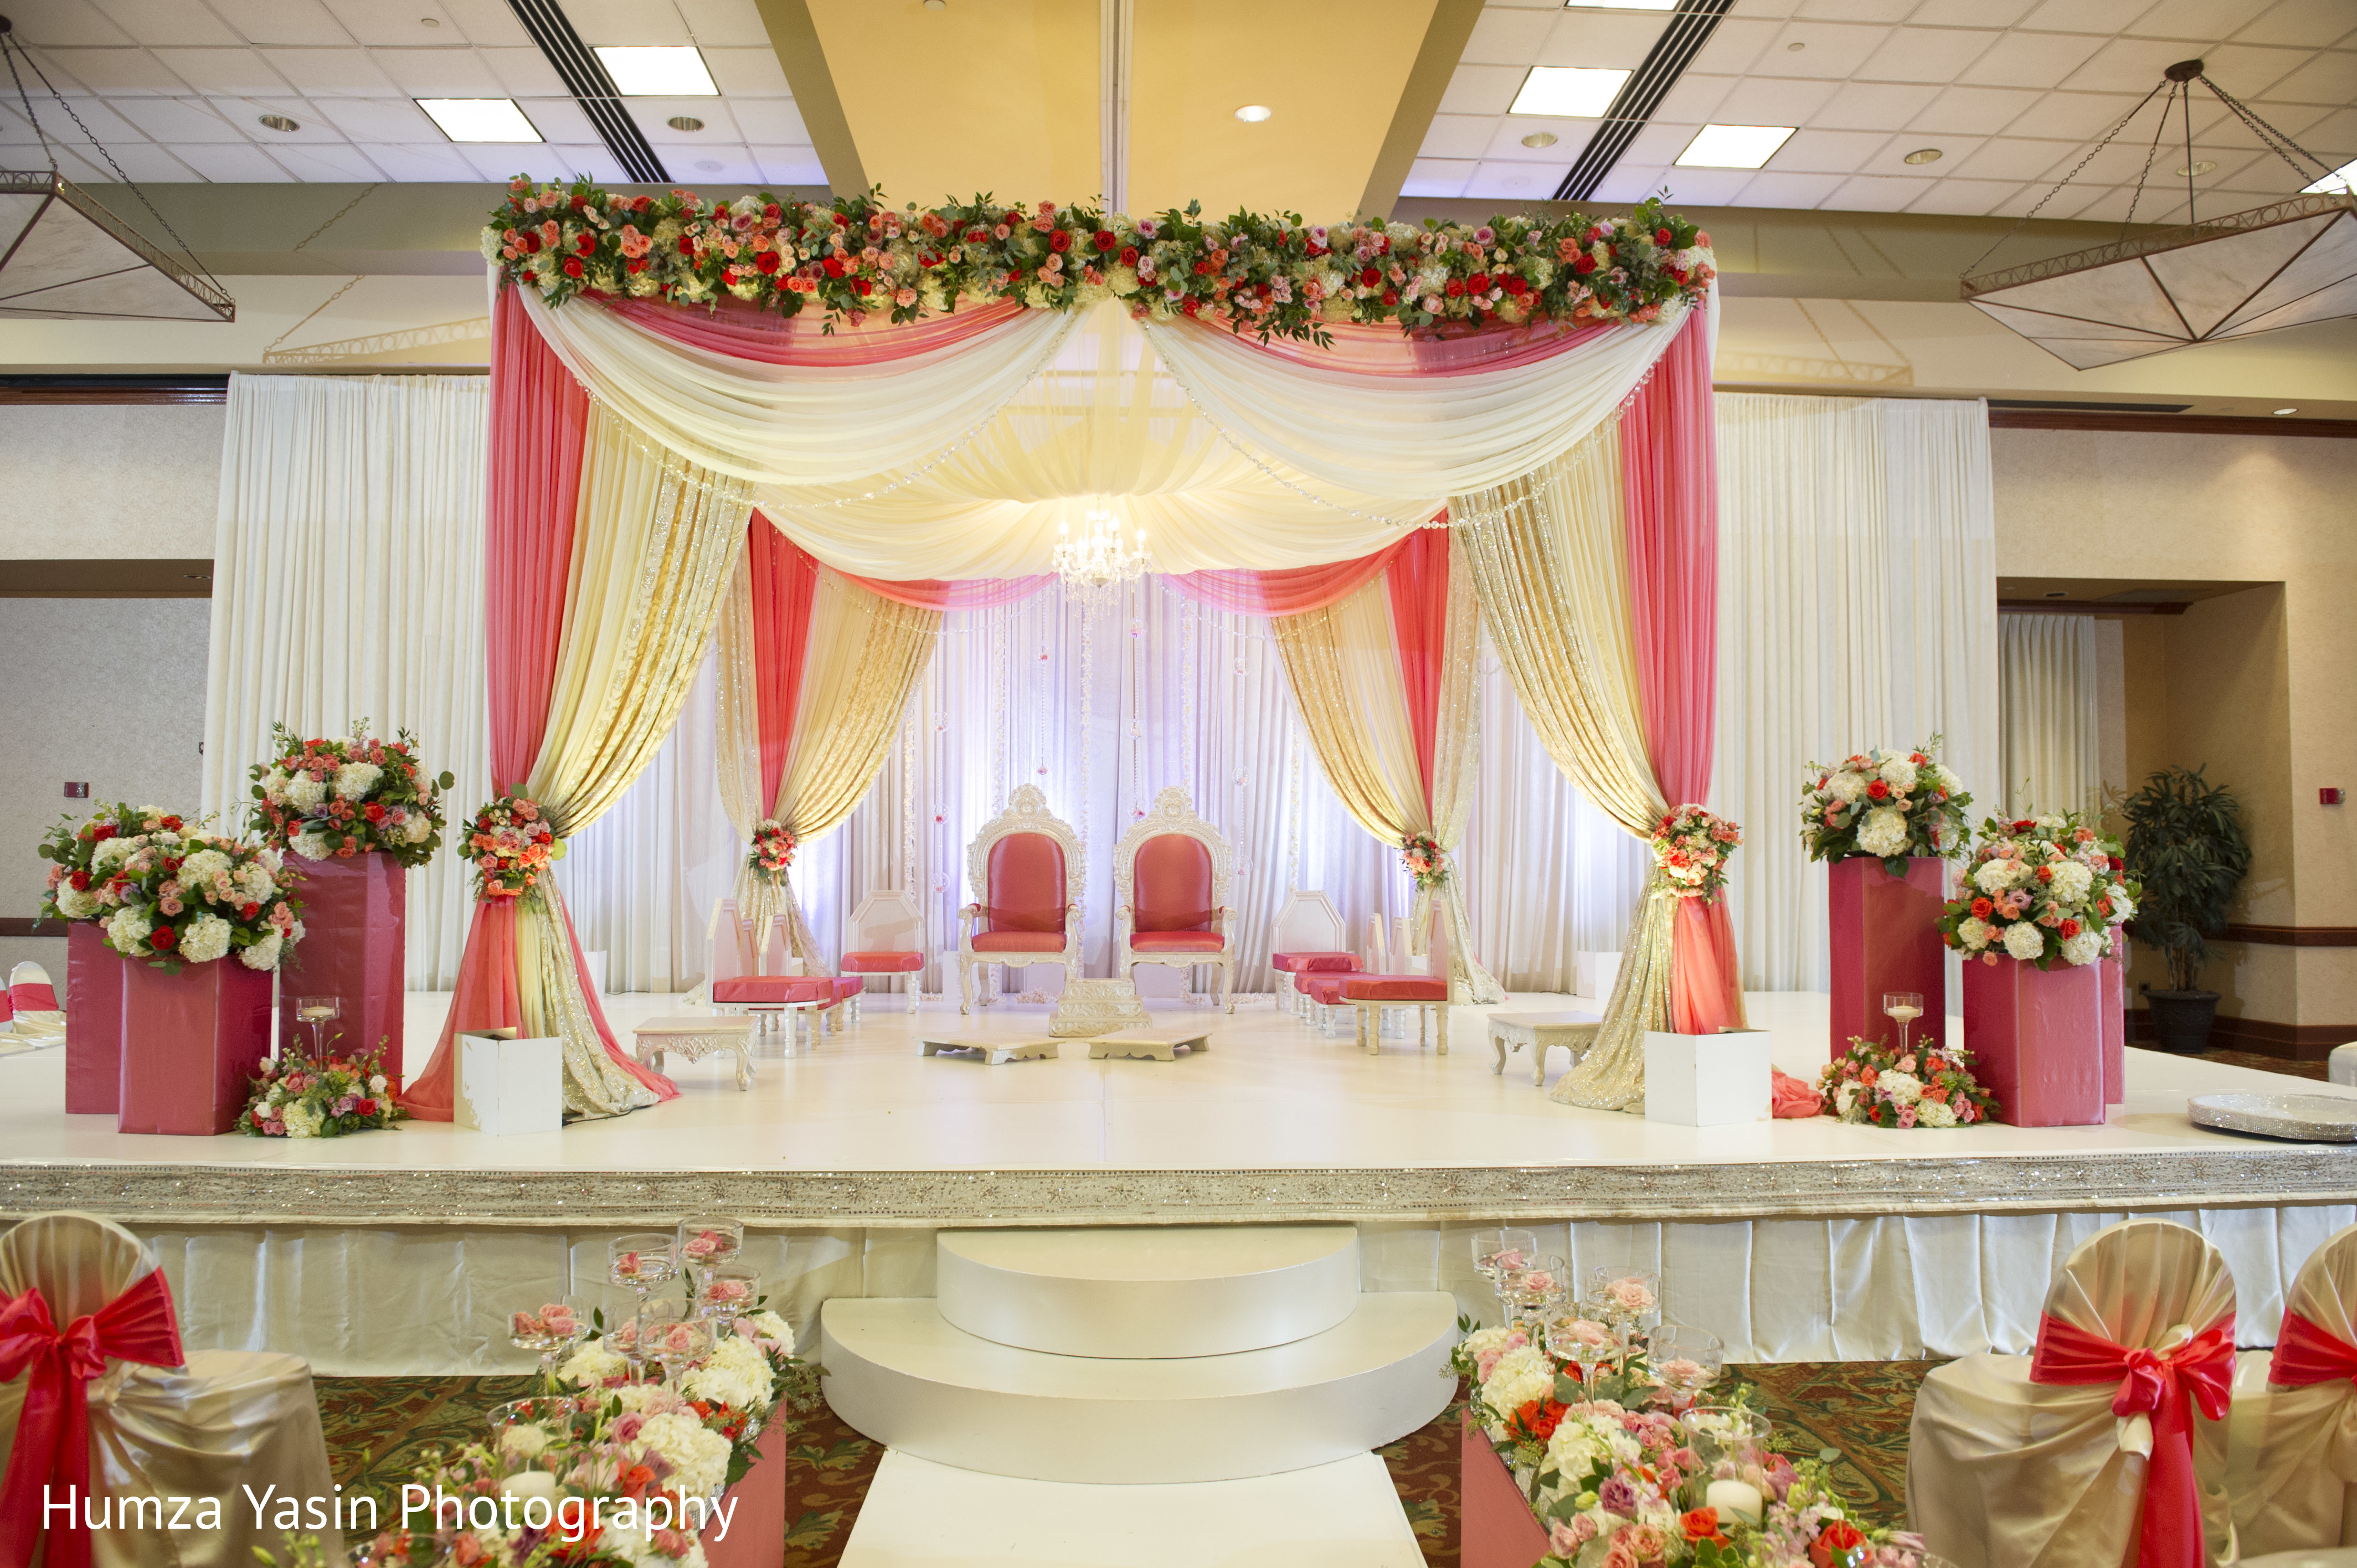 ceremony in grapevine tx gujarati wedding by humza yasin photography maharani weddings. Black Bedroom Furniture Sets. Home Design Ideas